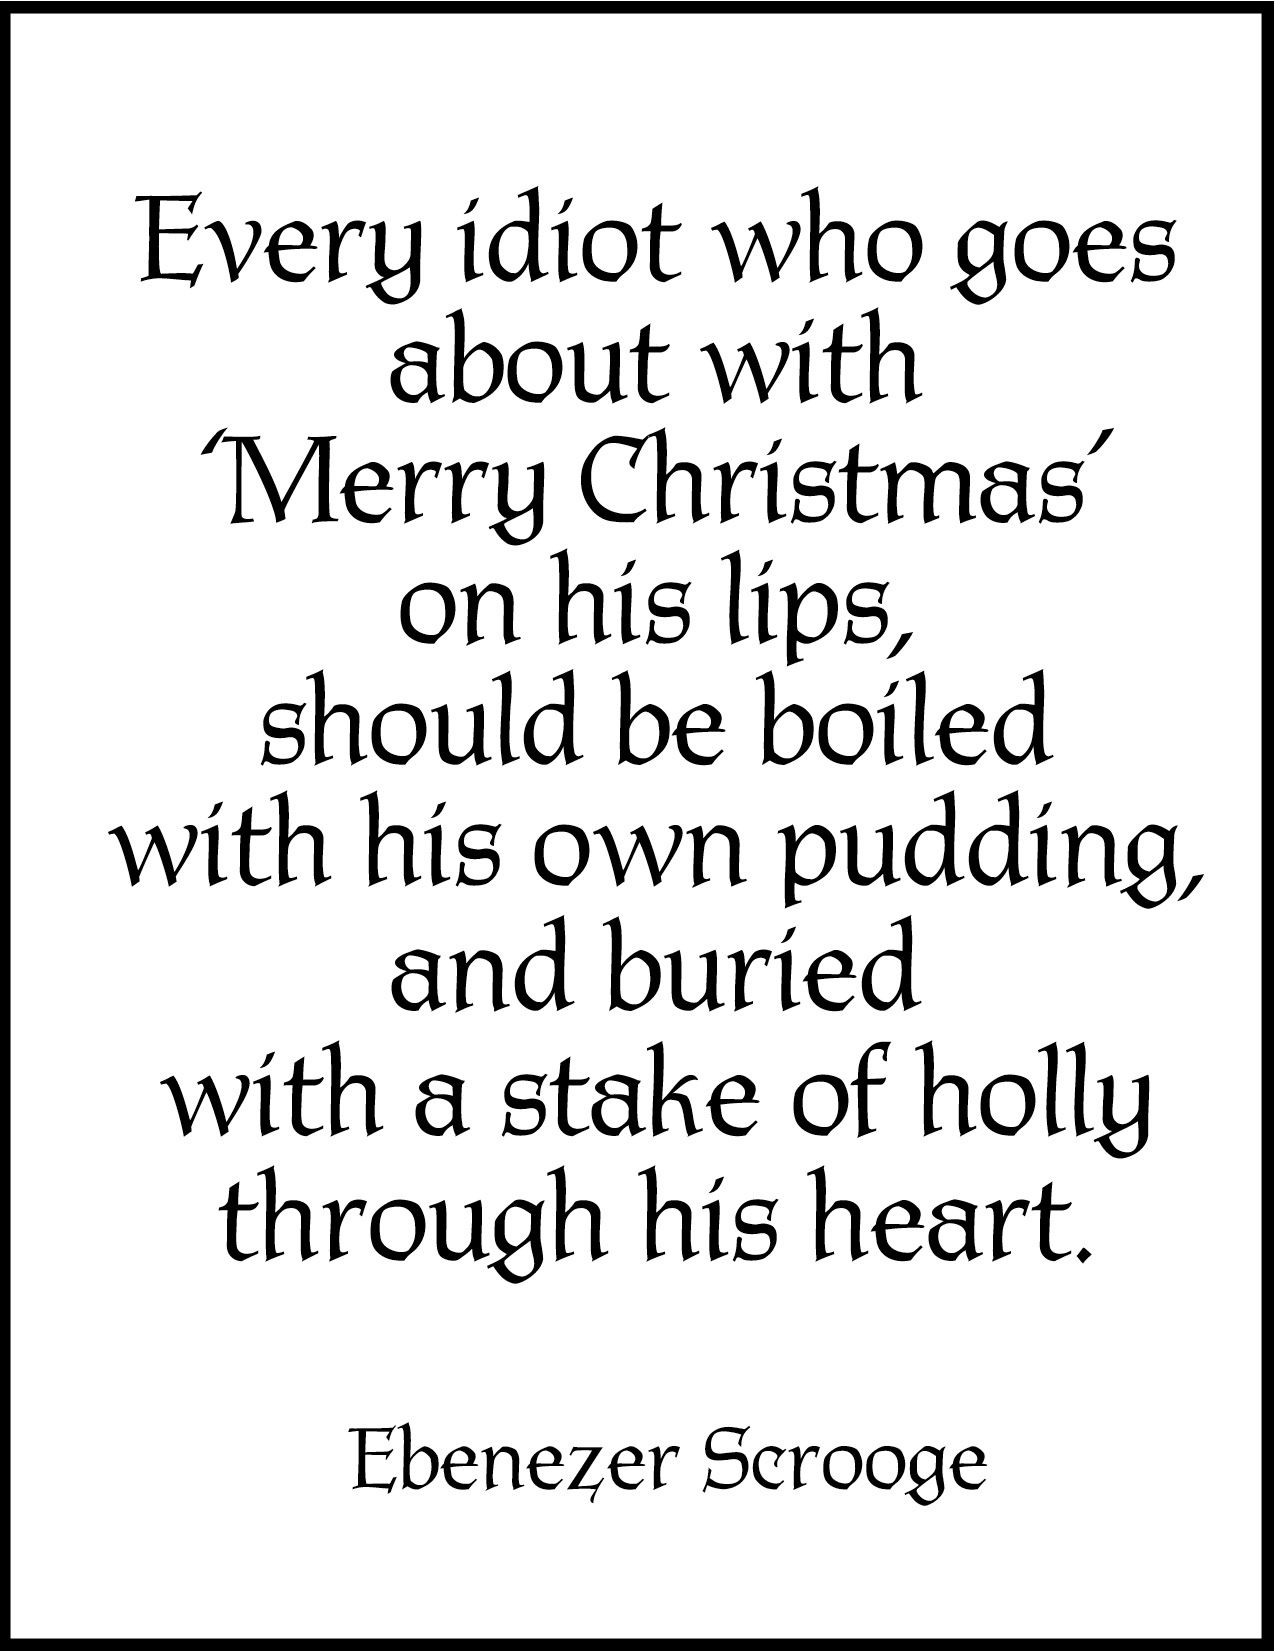 A Christmas Carol Scrooge Quotes.Every Idiot Who Goes About With Merry Christmas On His